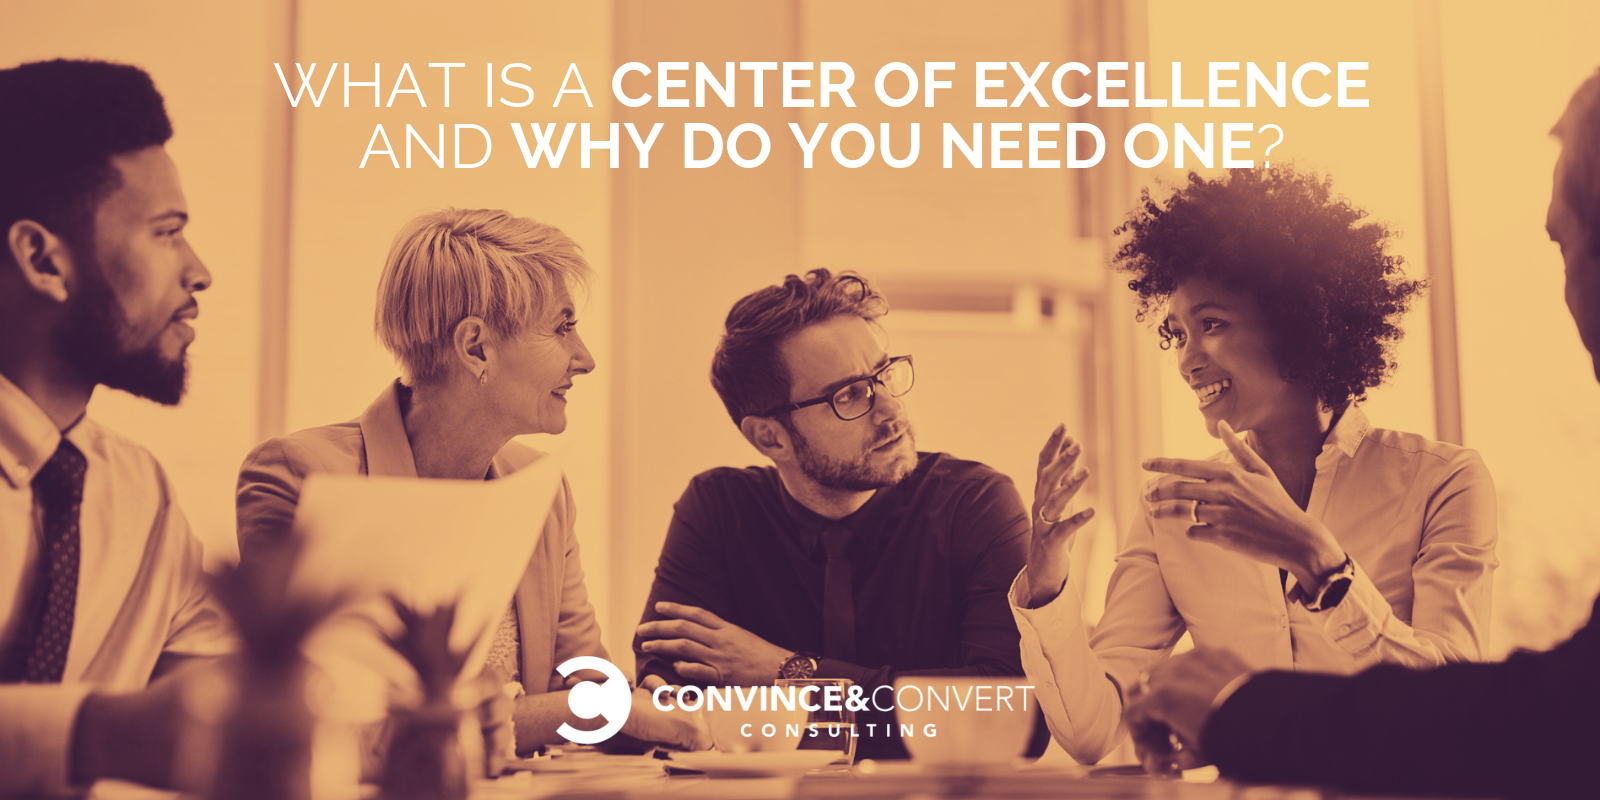 What Is a Center of Excellence and Why Do You Need One?